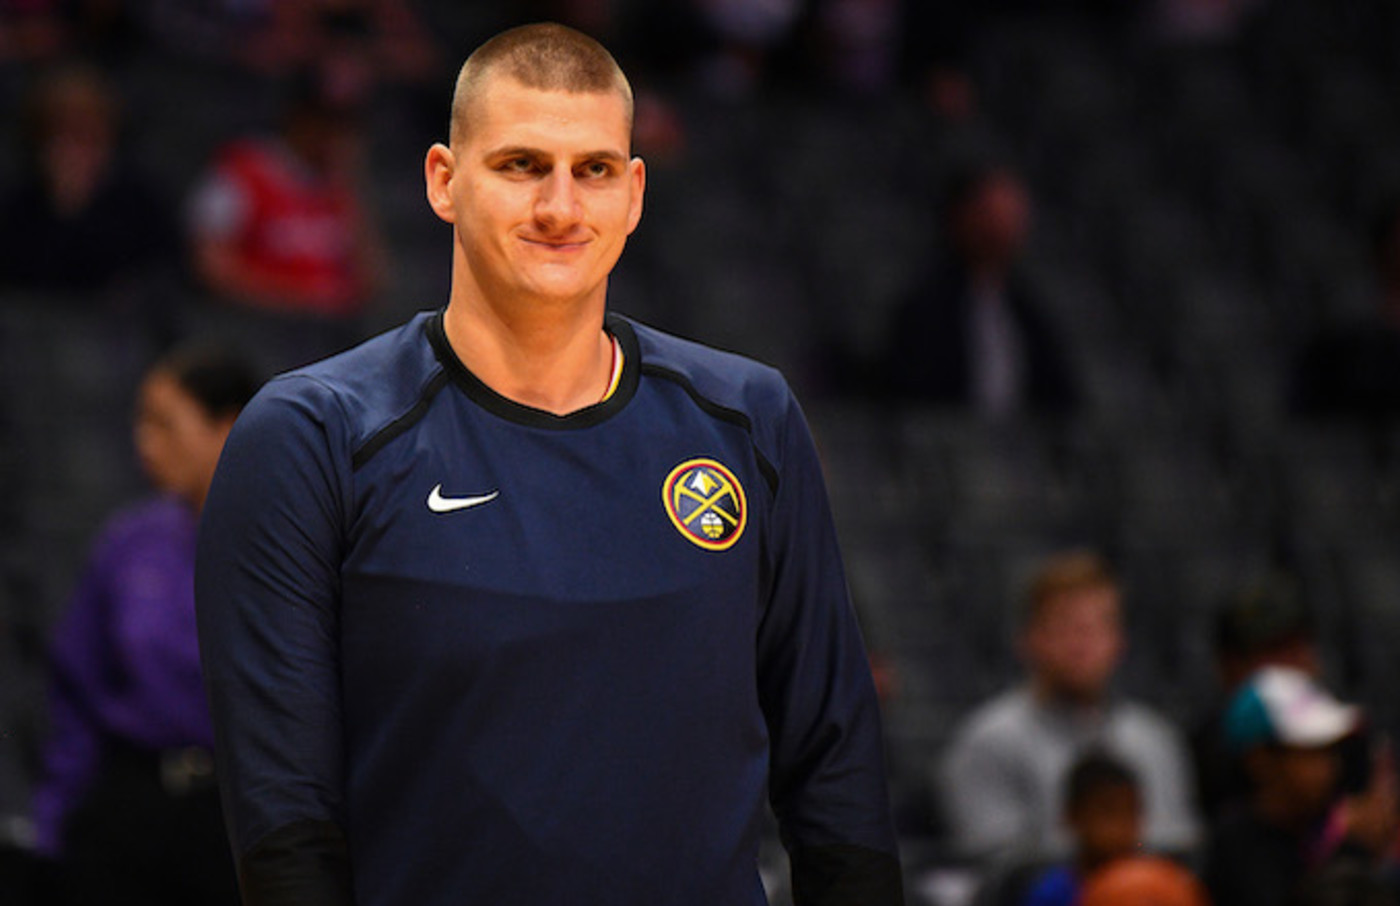 Denver Nuggets Center Nikola Jokic.